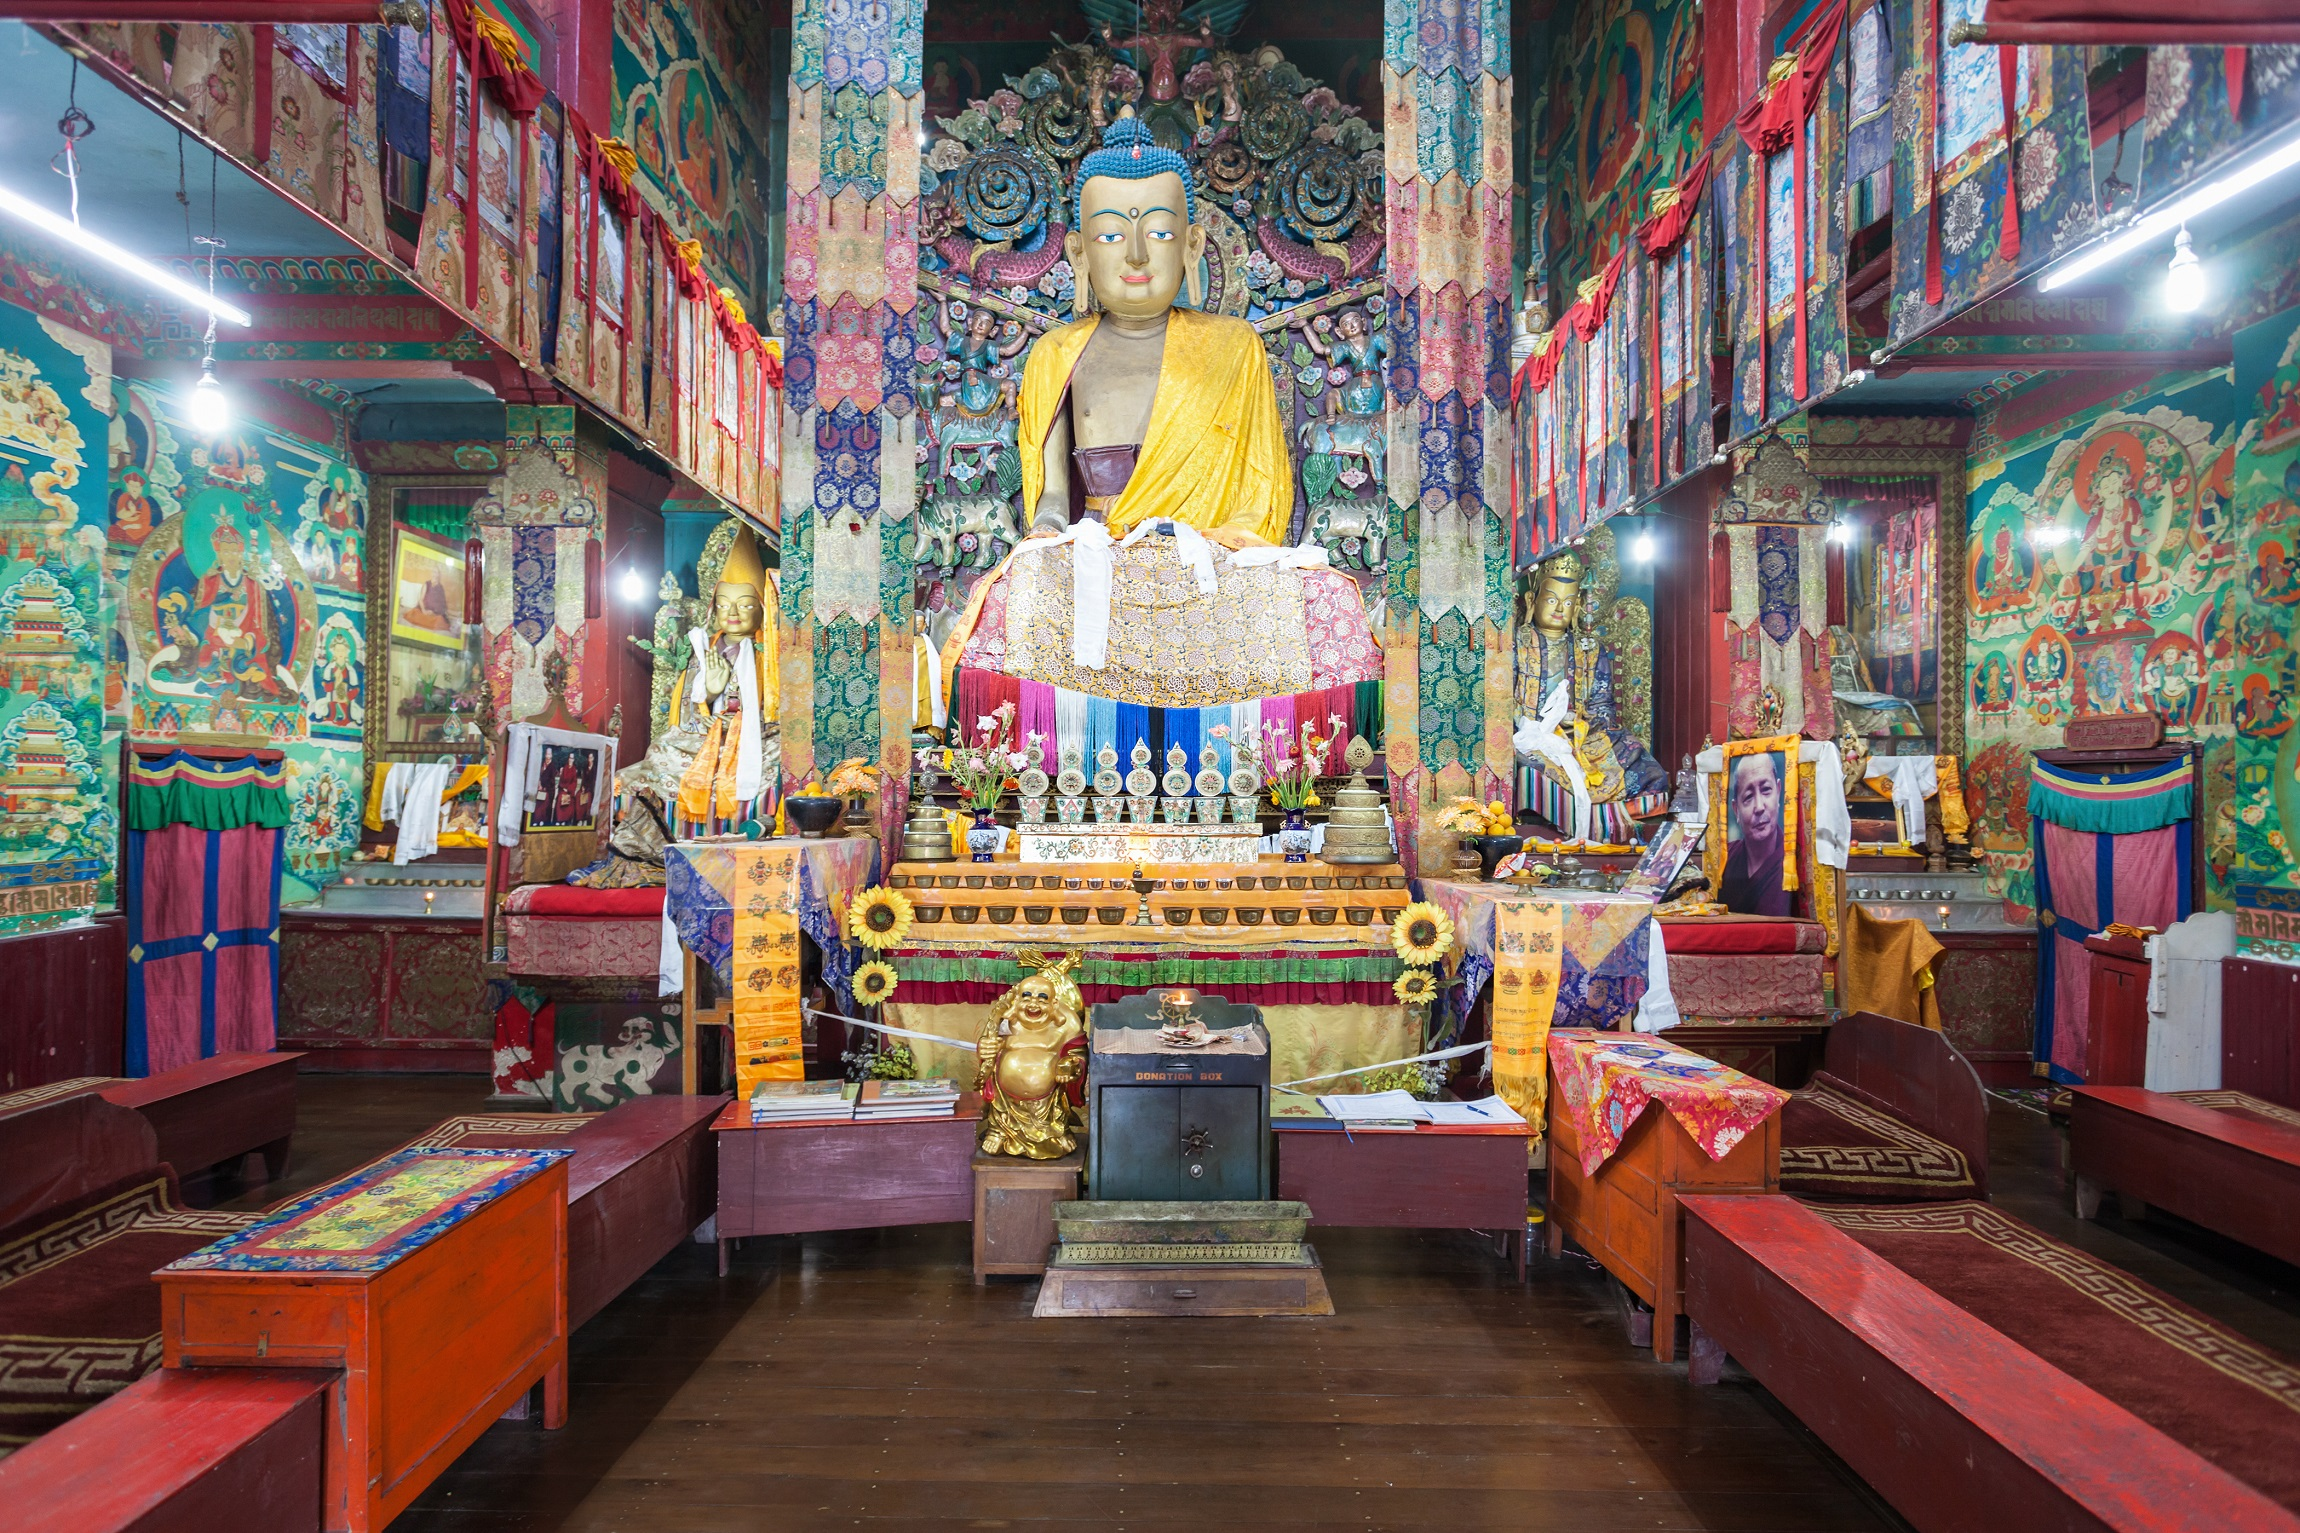 DARJEELING, INDIA - NOVEMBER 17, 2015 Ghoom Monastery interior. It is located in Darjeeling in the state of West Bengal, India